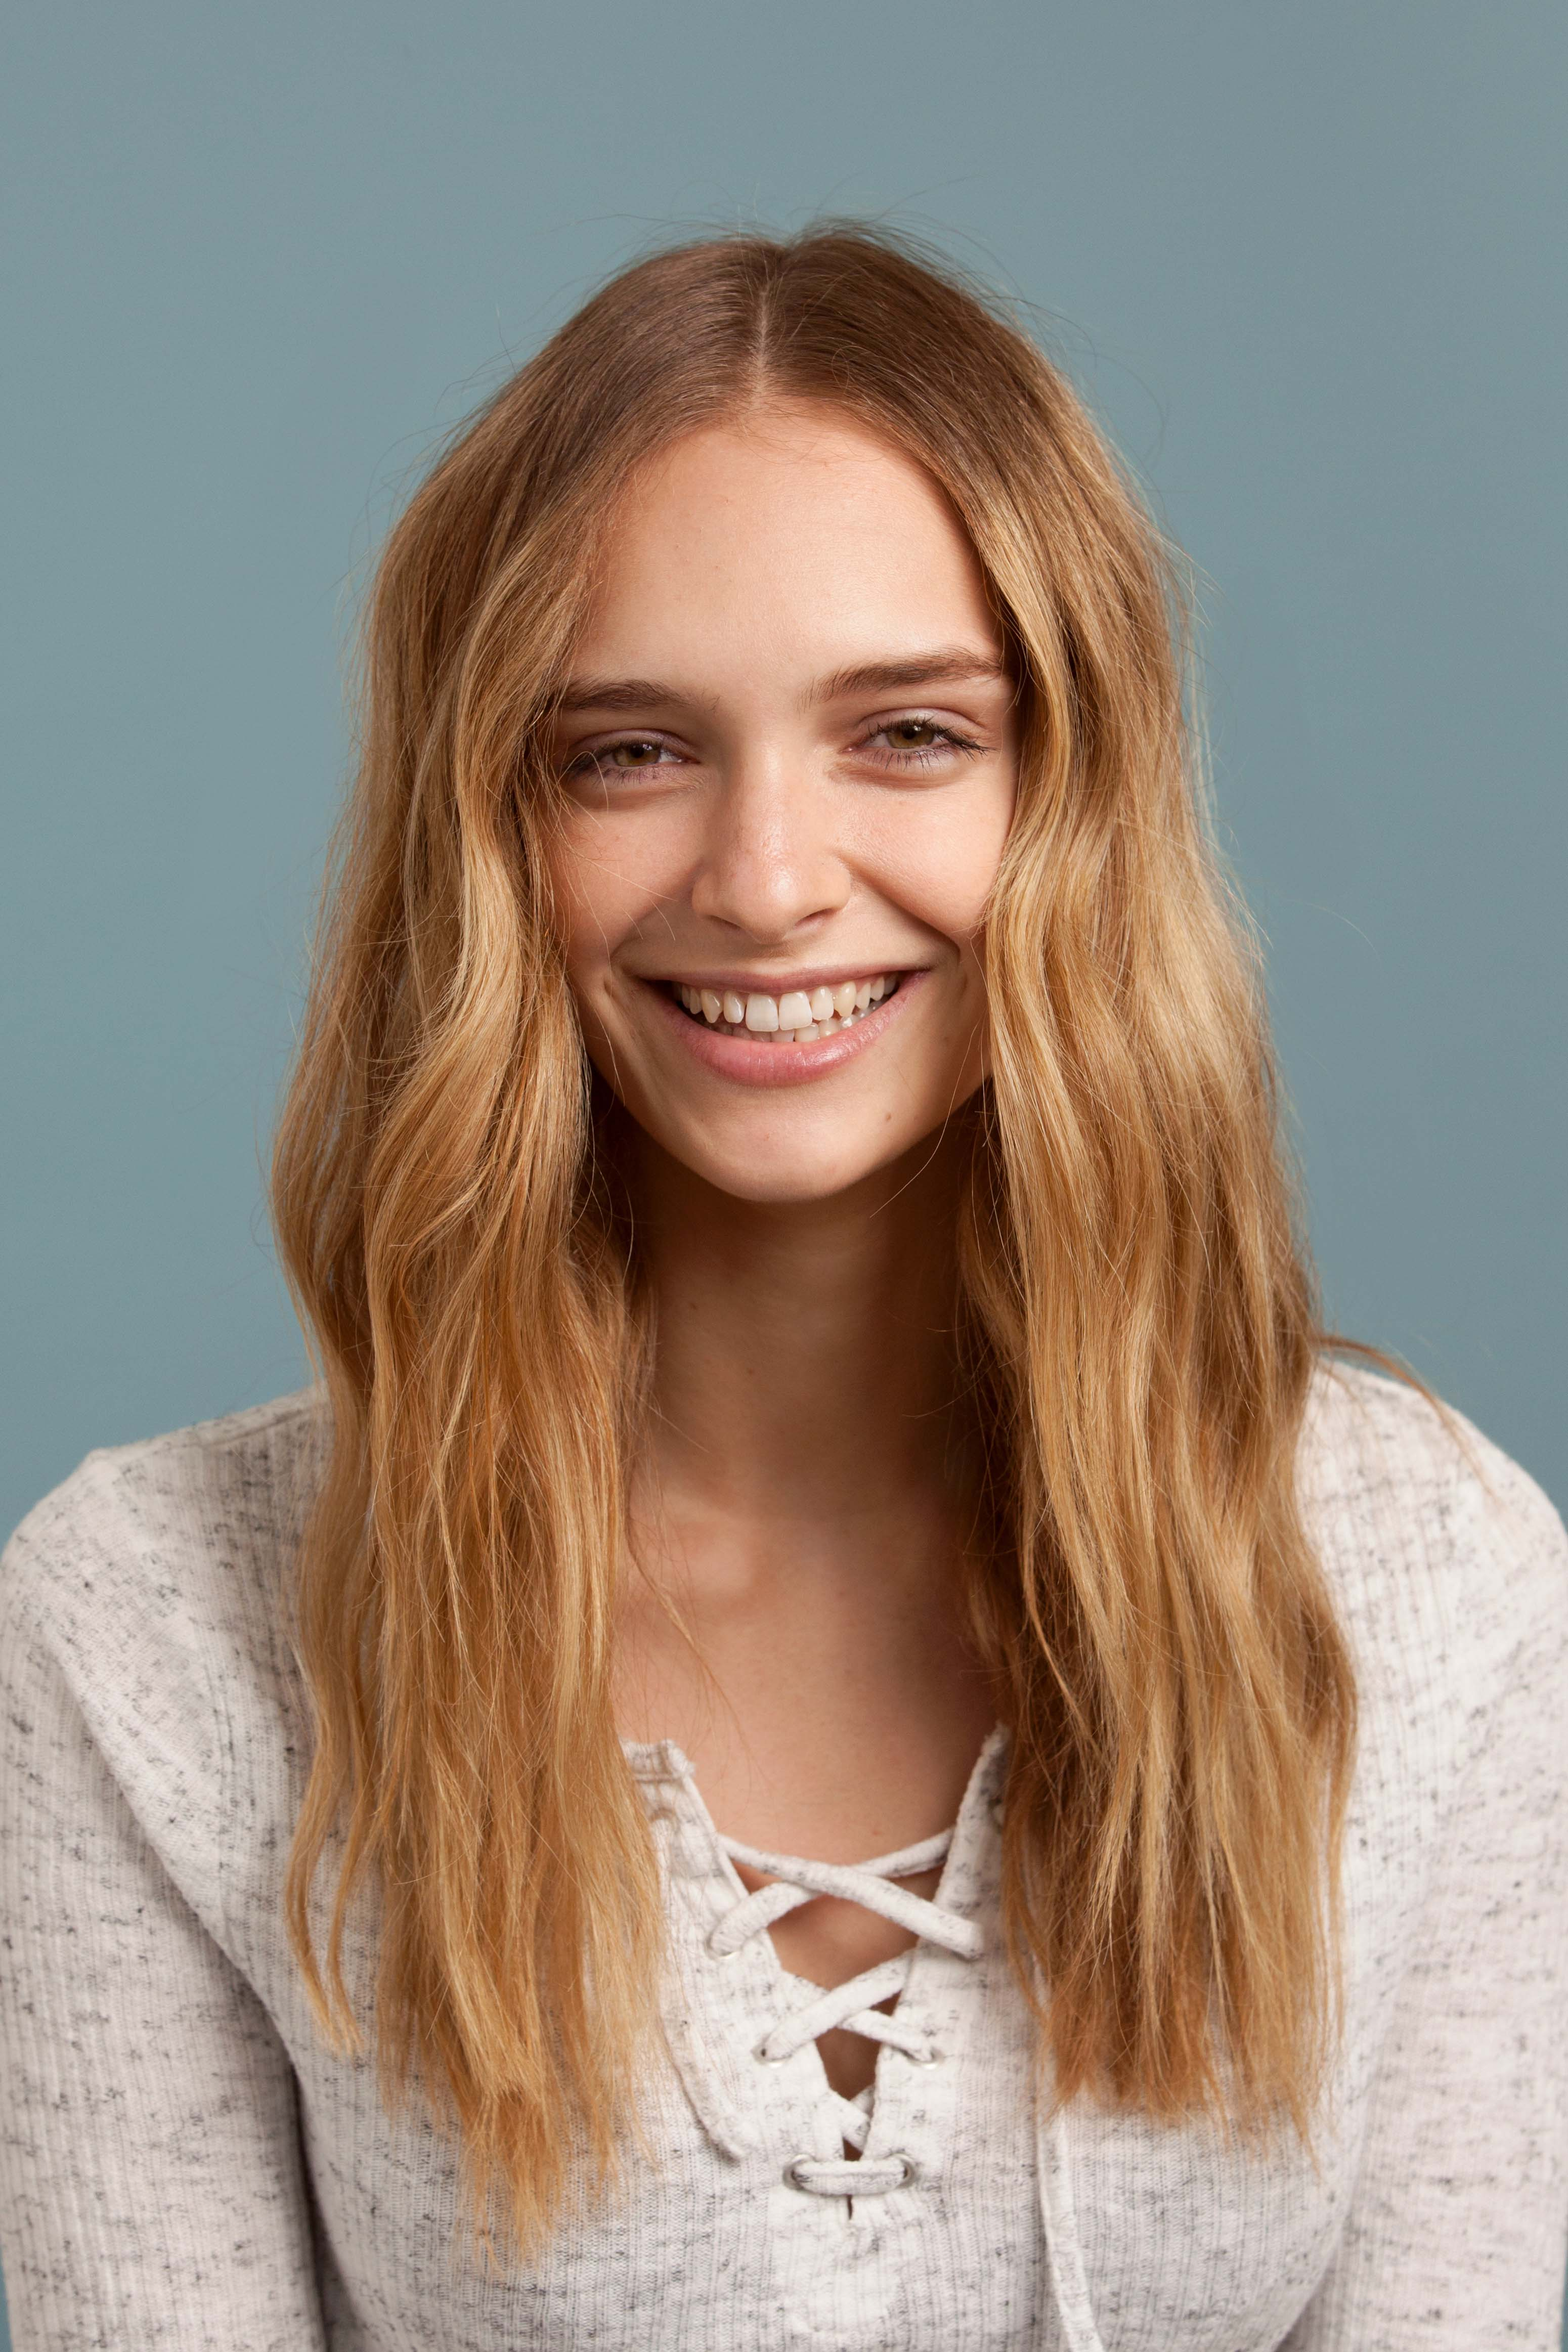 quick and easy hairstyles: All Things Hair - IMAGE - beach waves